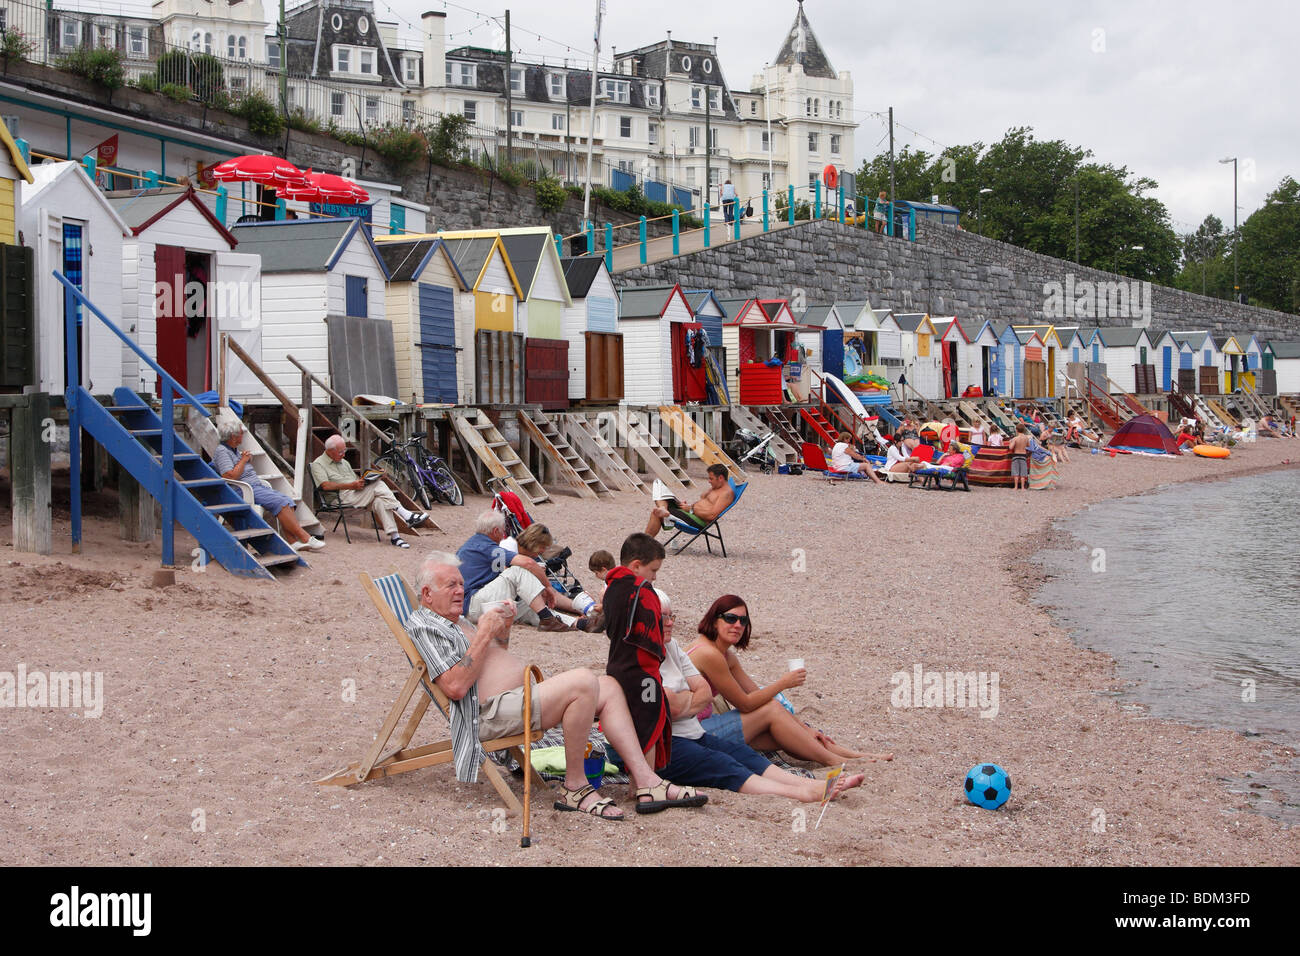 British family on seaside holiday, Torquay beach, Devon, England, UK - Stock Image